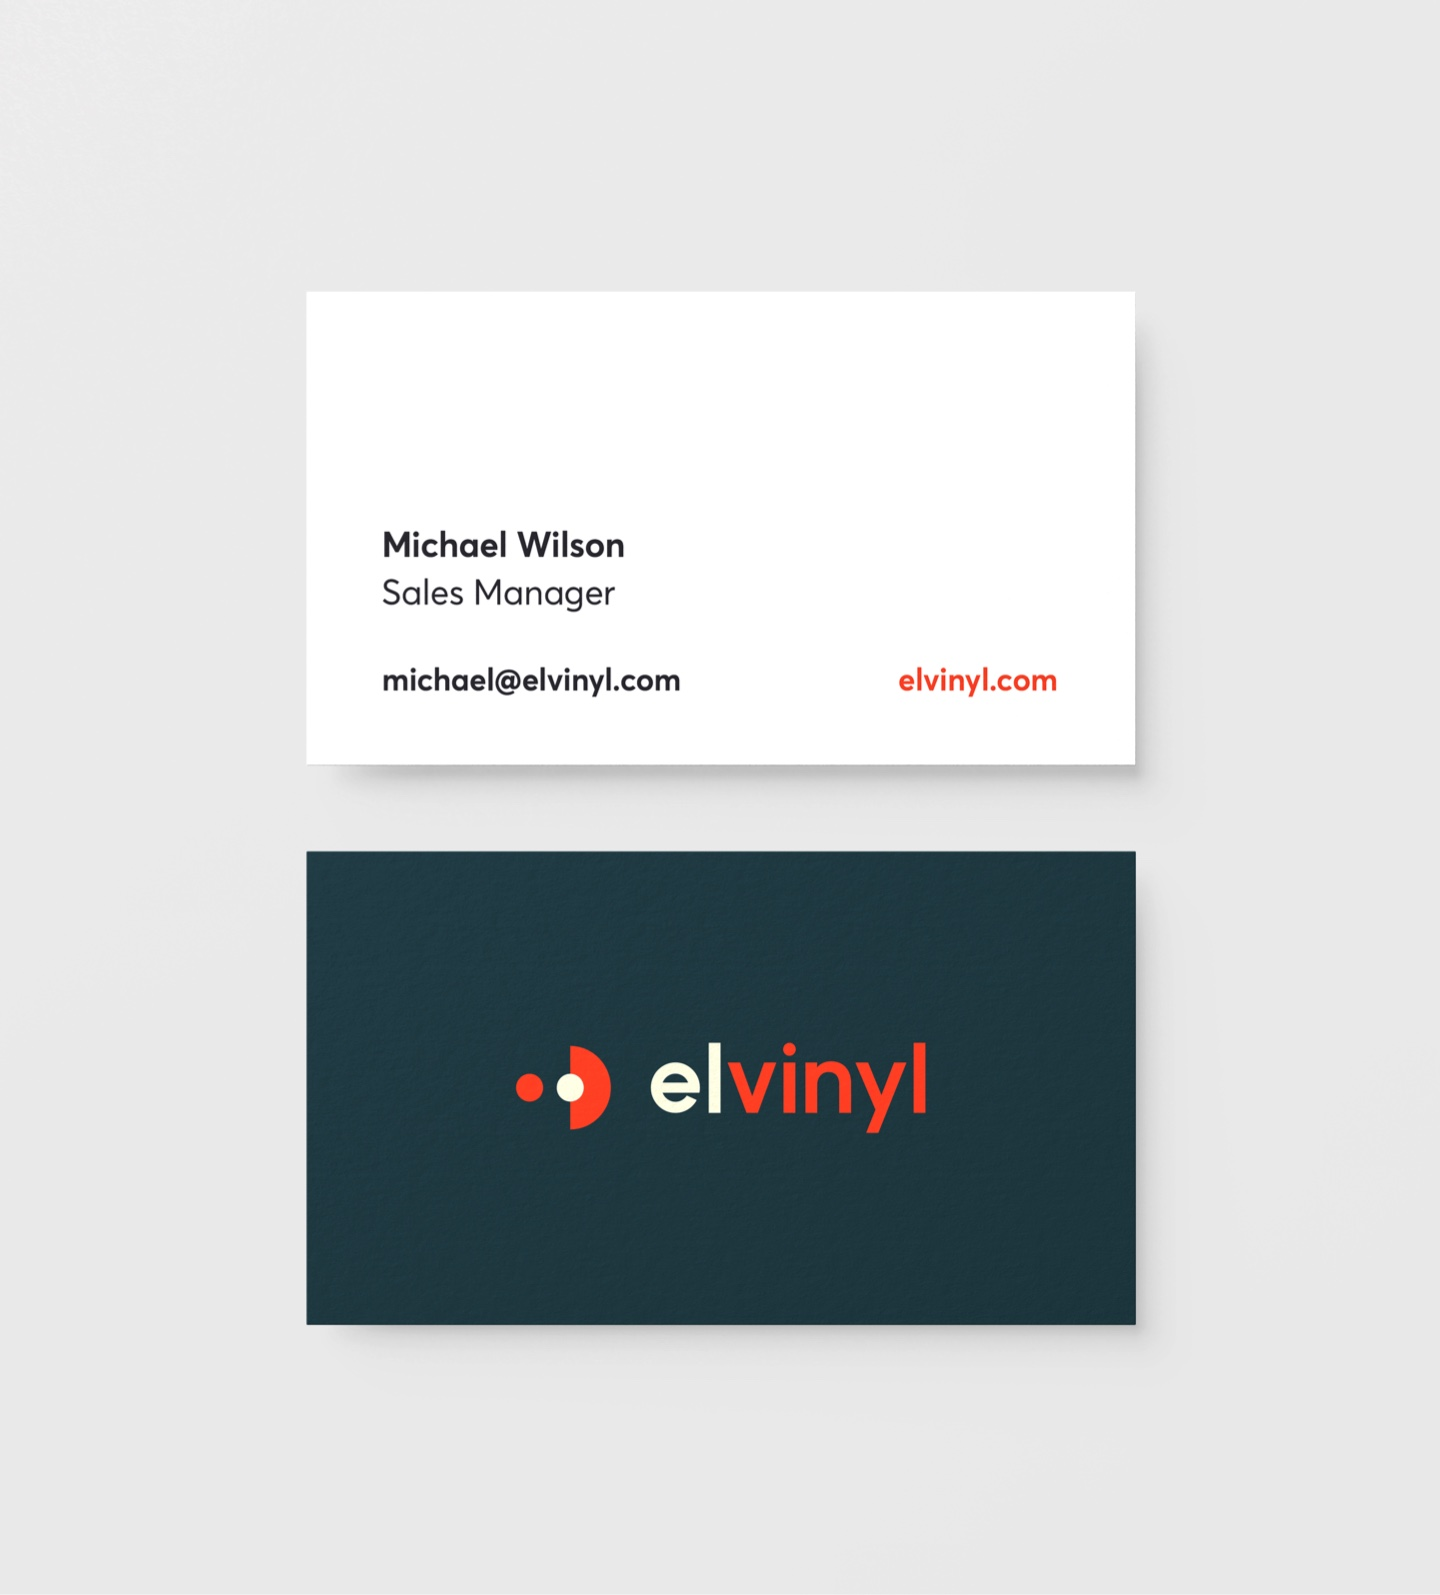 elvinyl business cards